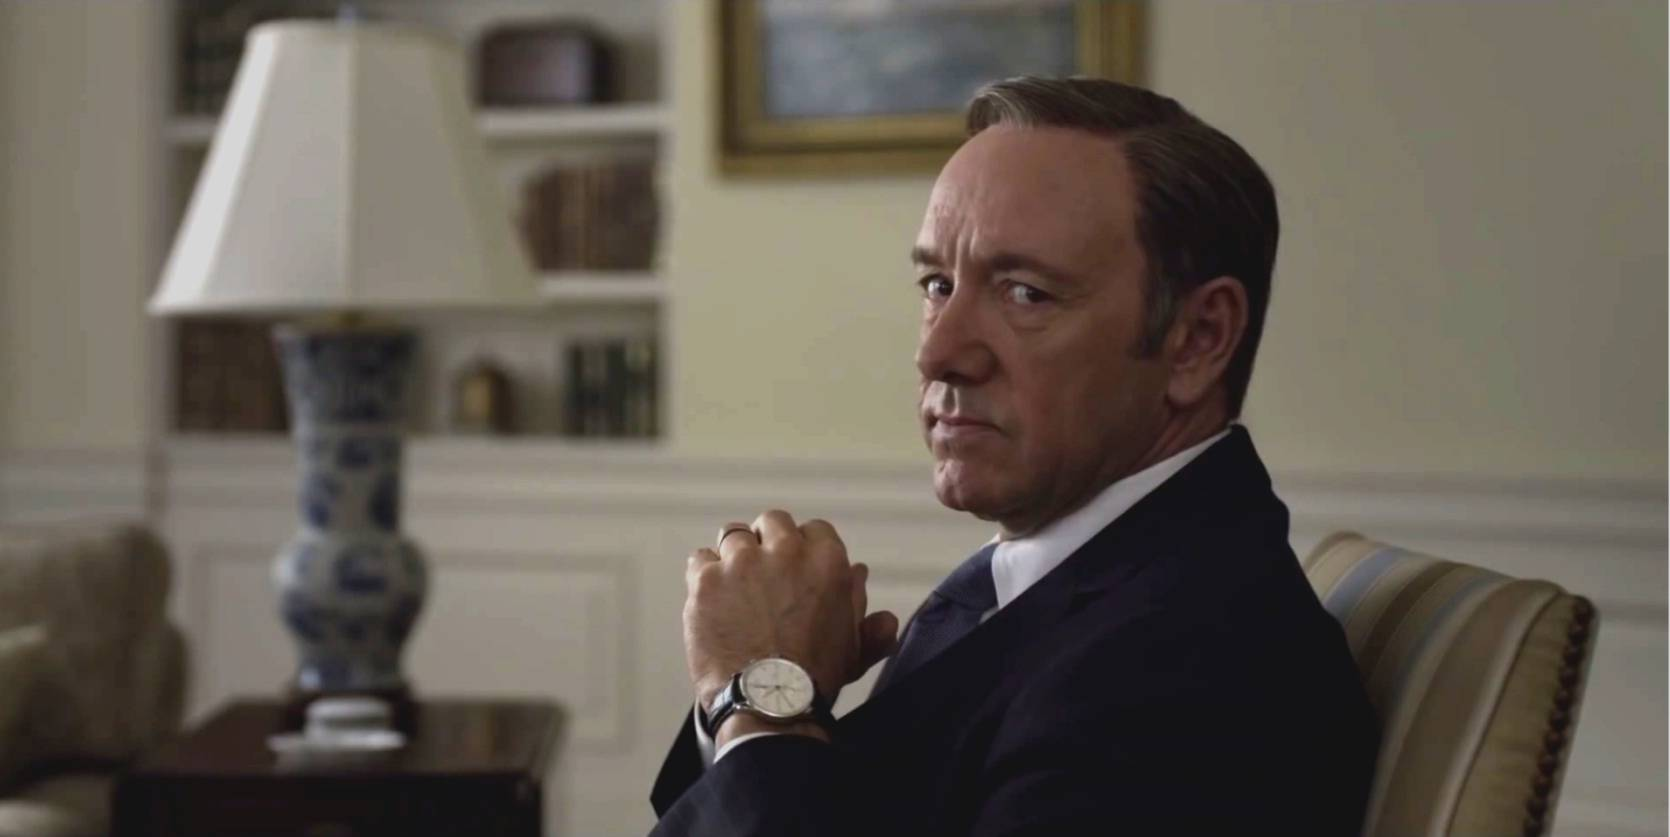 House-of-Cards-Frank-Underwood.jpg